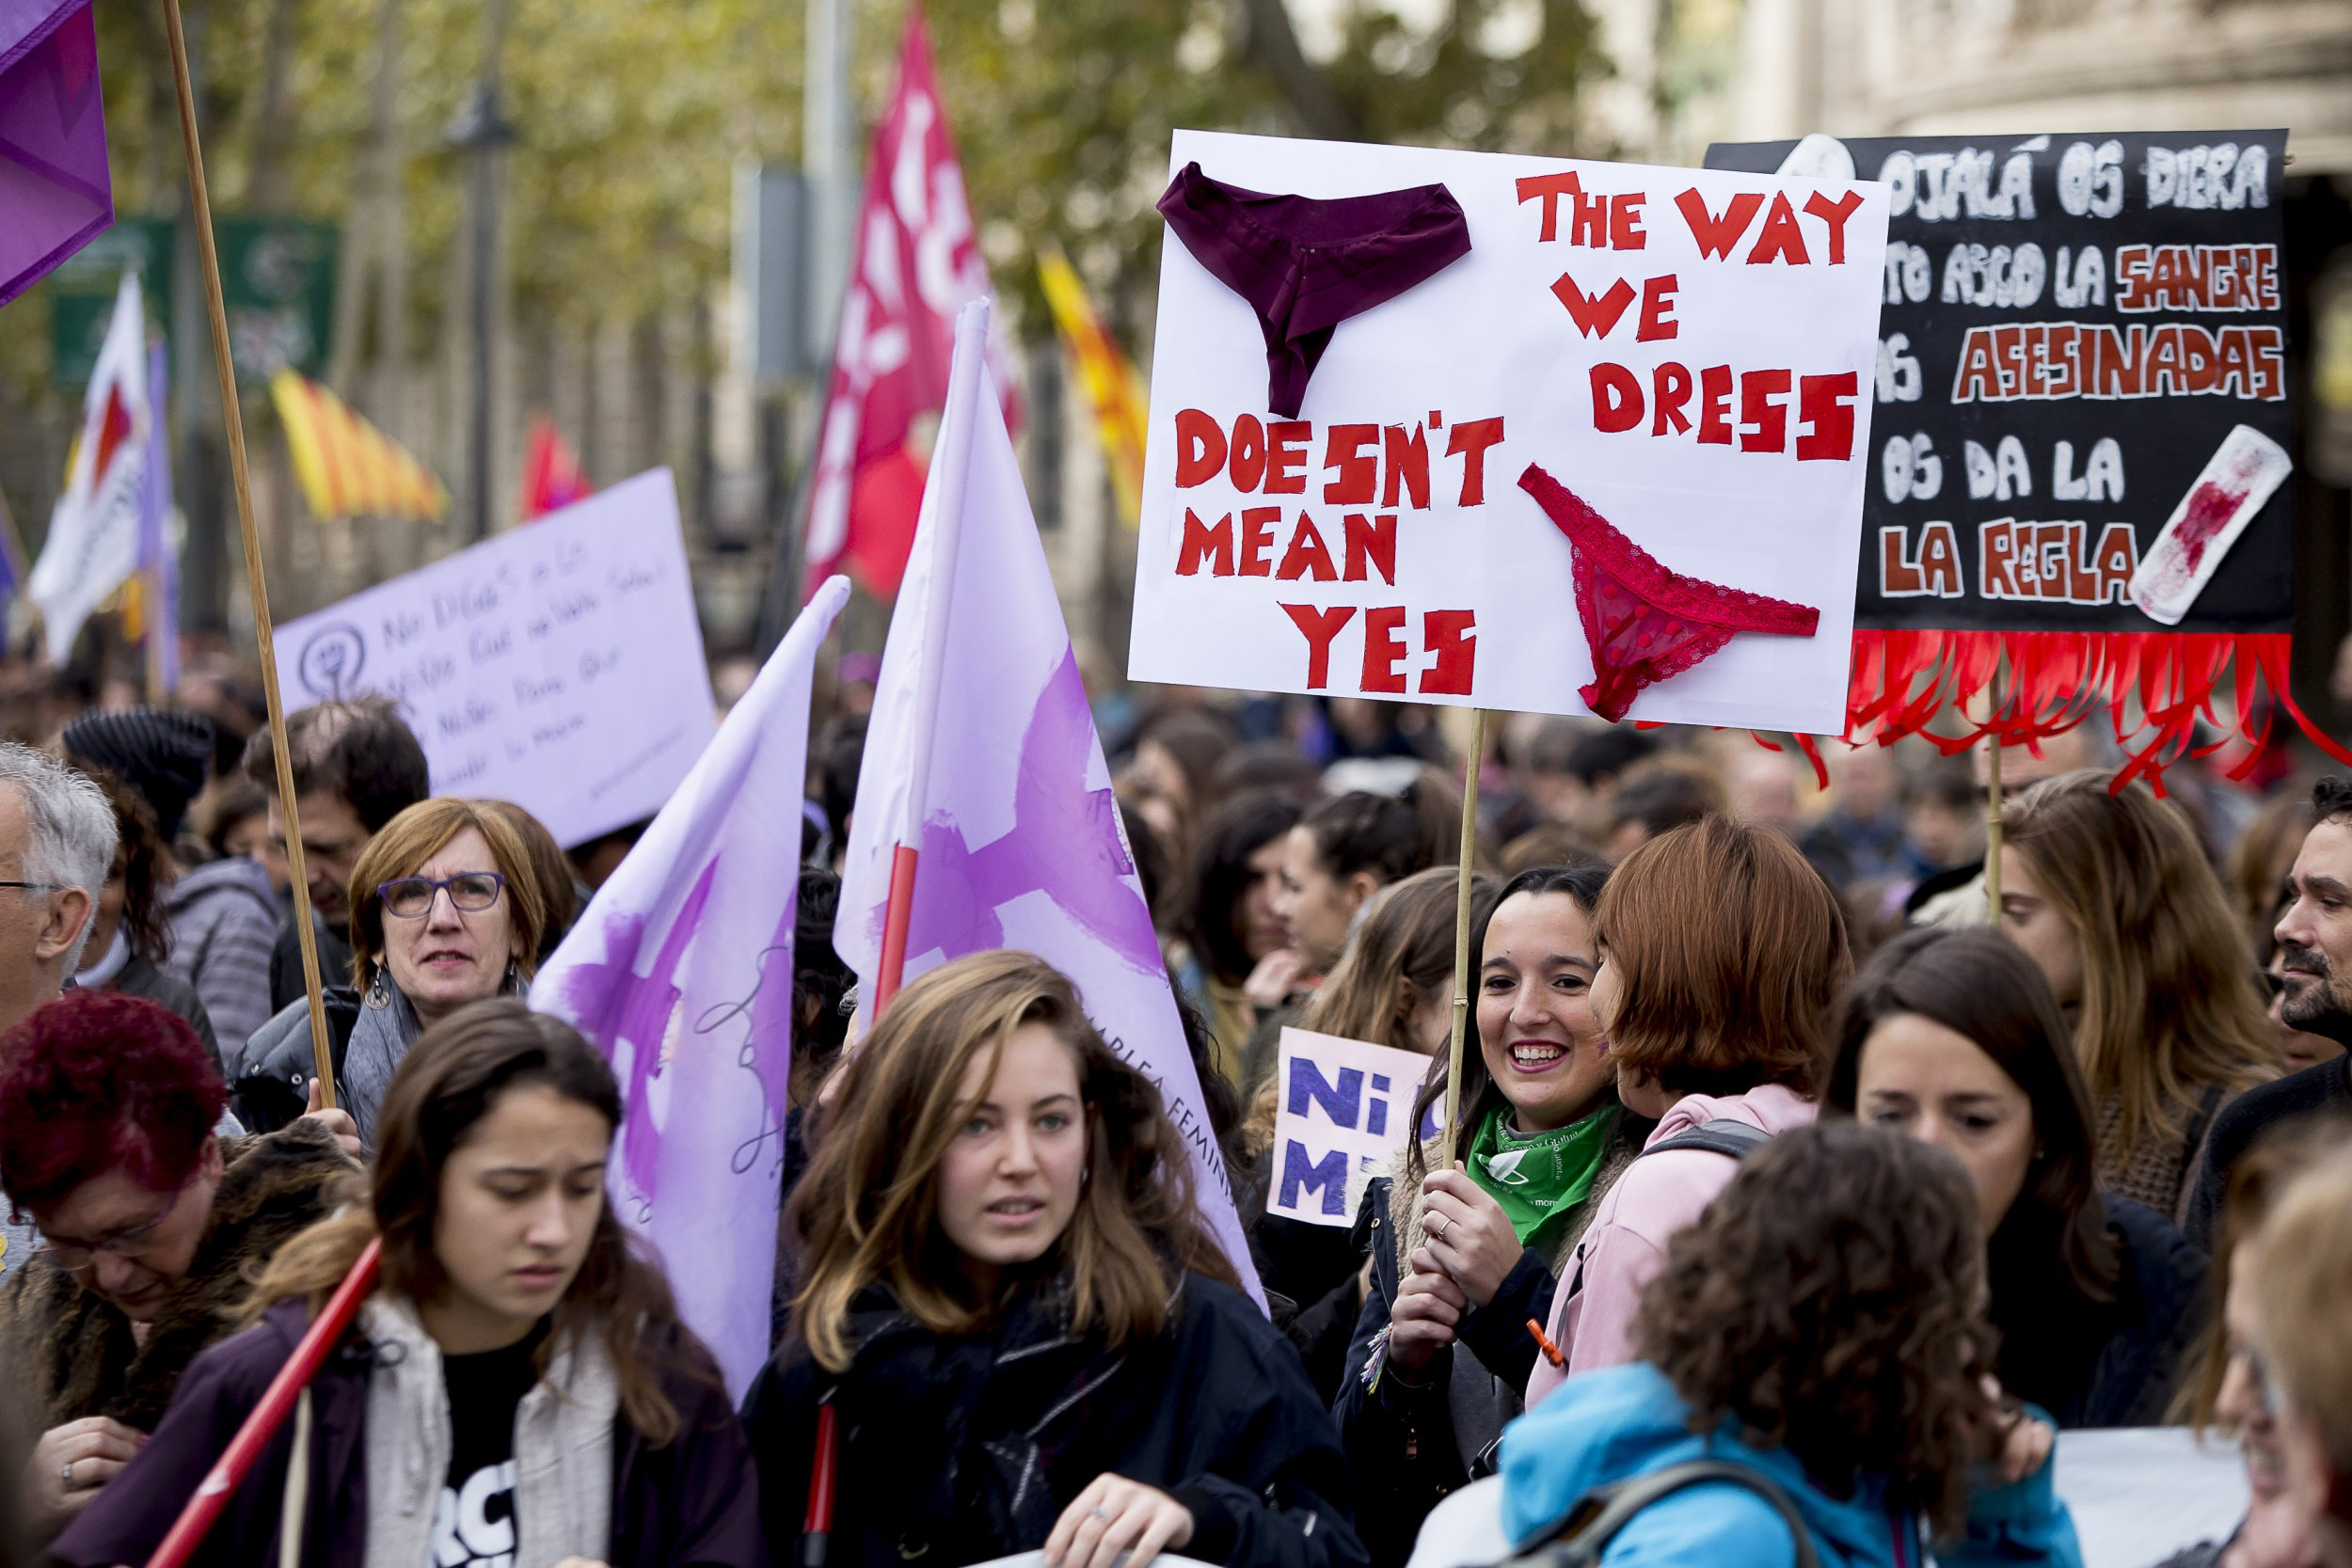 Thousands of people demonstrate against sexist violence in the International Day for elimination of Violence against women on November 25, 2018 in Barcelona, Catalonia, Spain (Photo by Miquel Llop/NurPhoto via Getty Images)